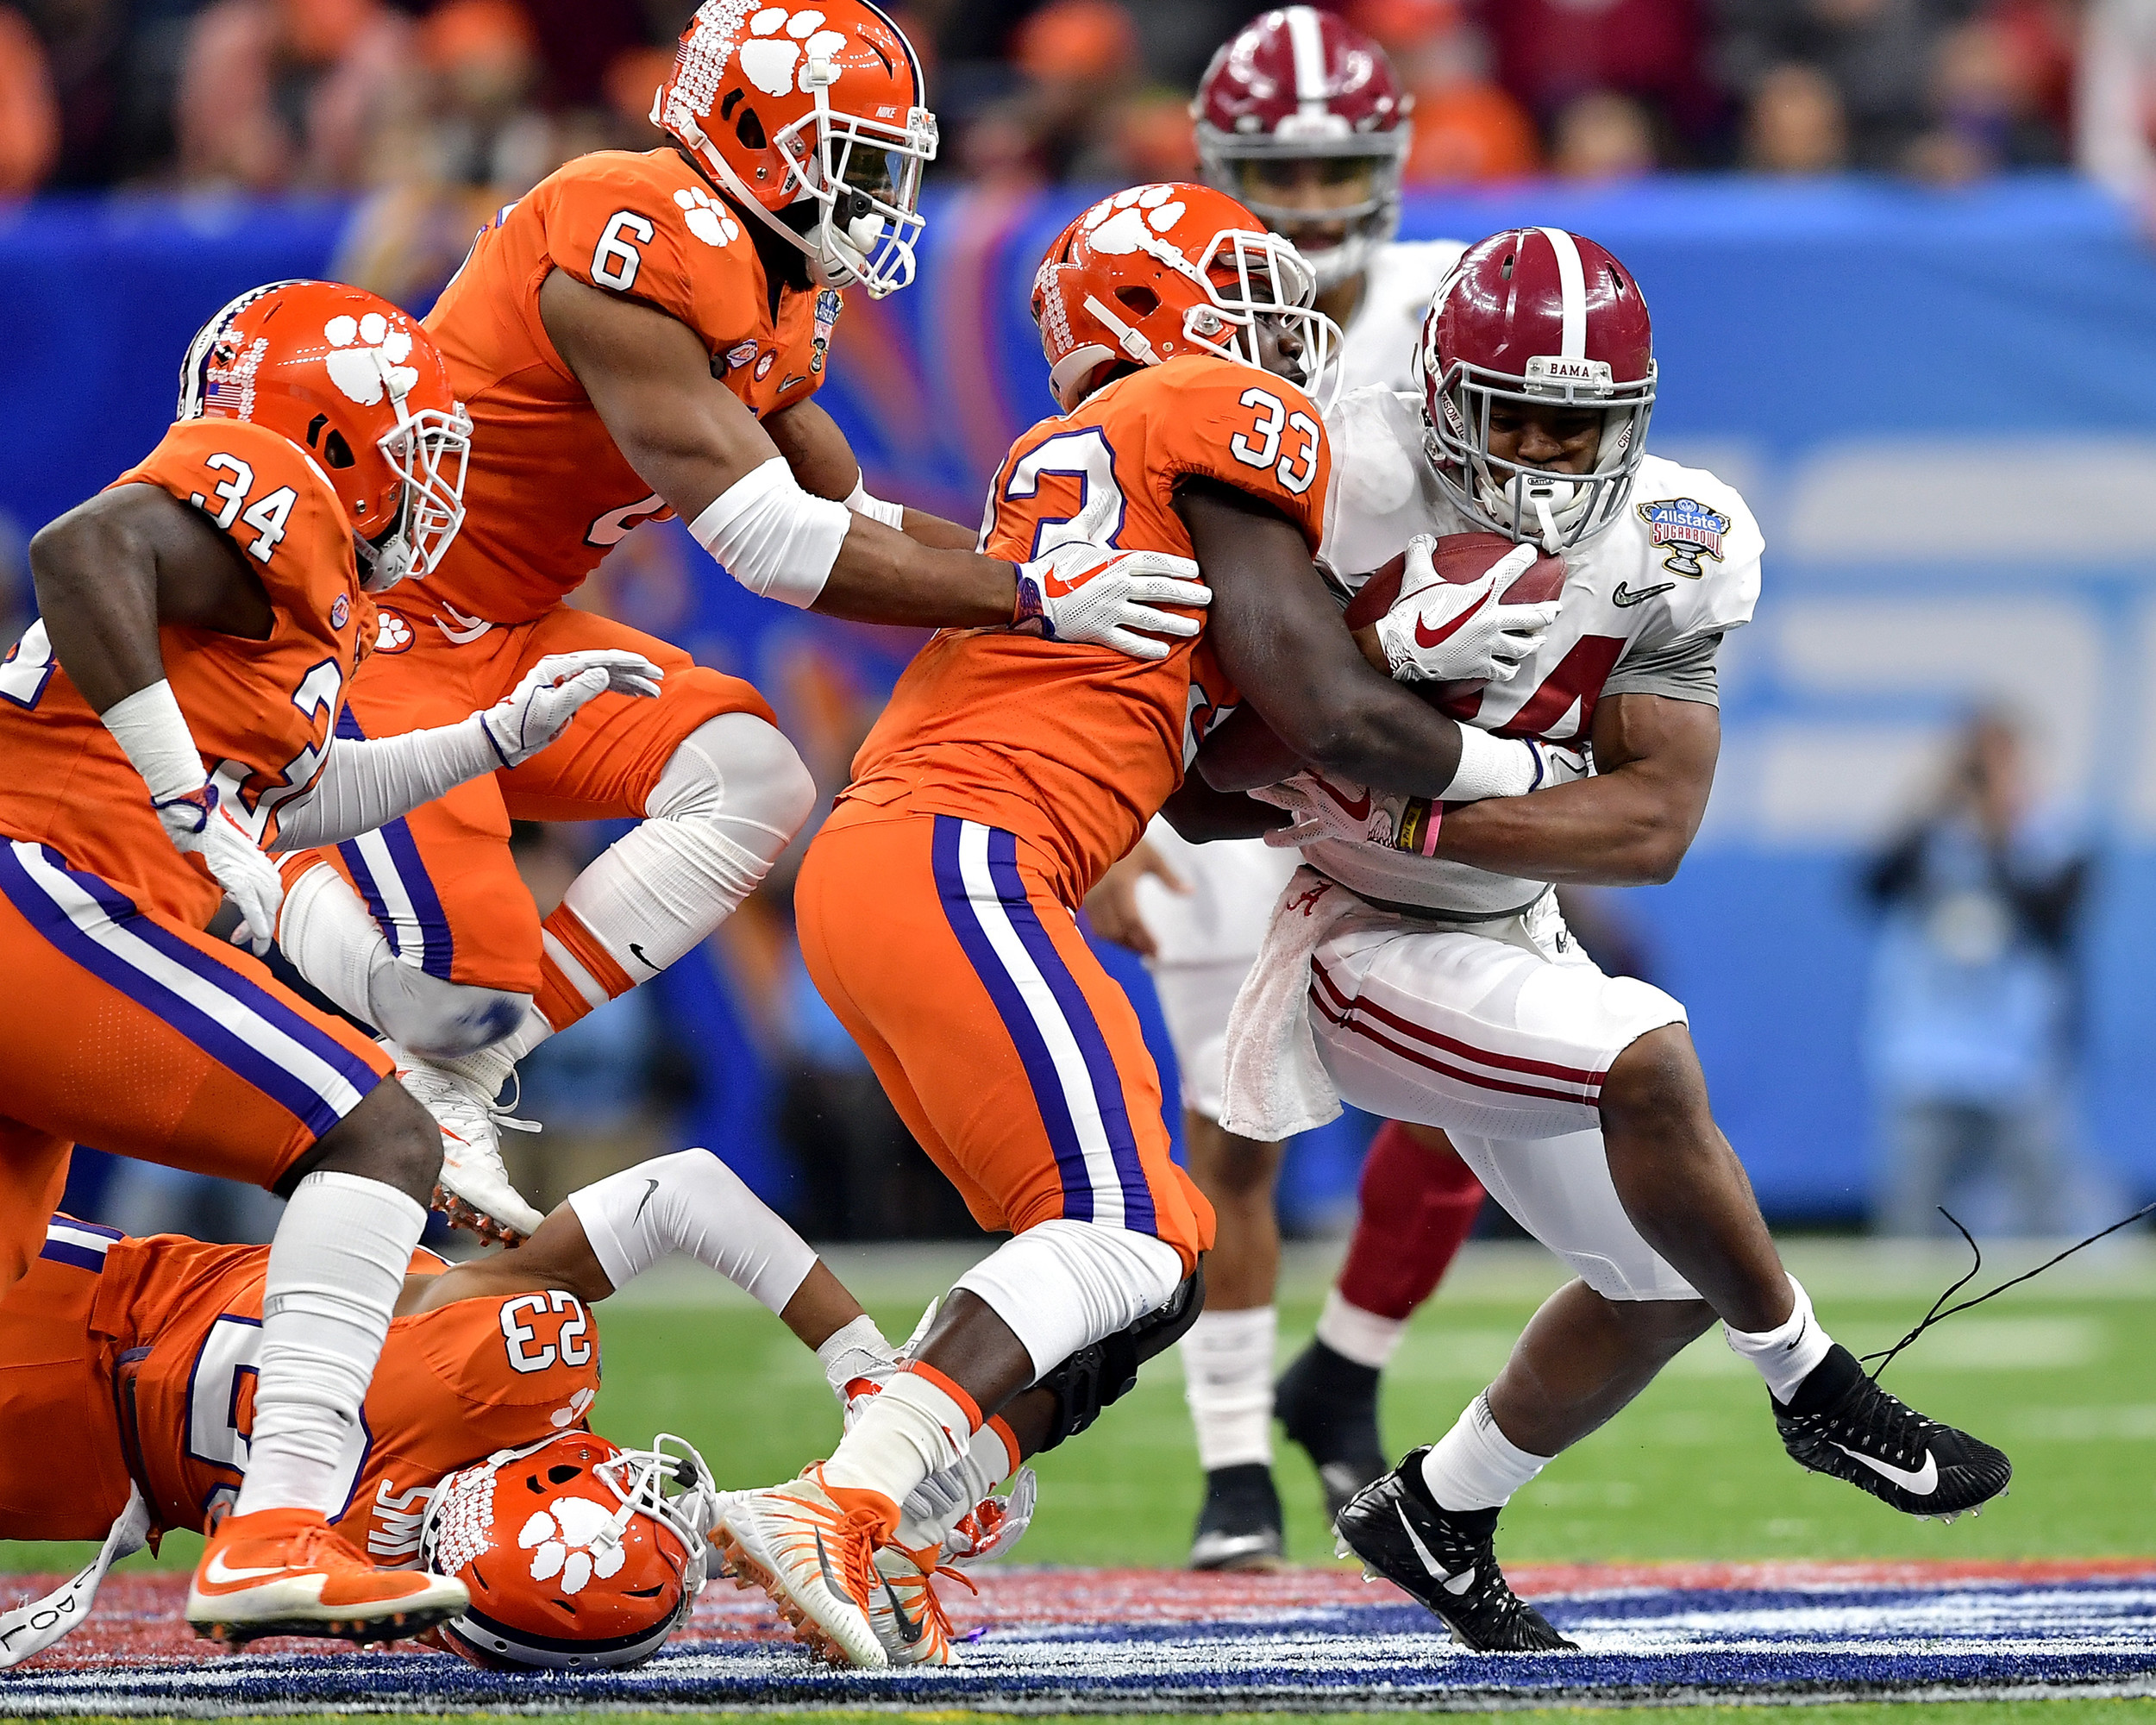 Alabama Crimson Tide running back Damien Harris (34) with a carry in the first half of the 2018 AllState Sugar Bowl on Jan. 1, 2018, at the Mercedes-Benz SuperDome in New Orleans, La. Alabama won the game 24-6. (Photo by Lee Walls)